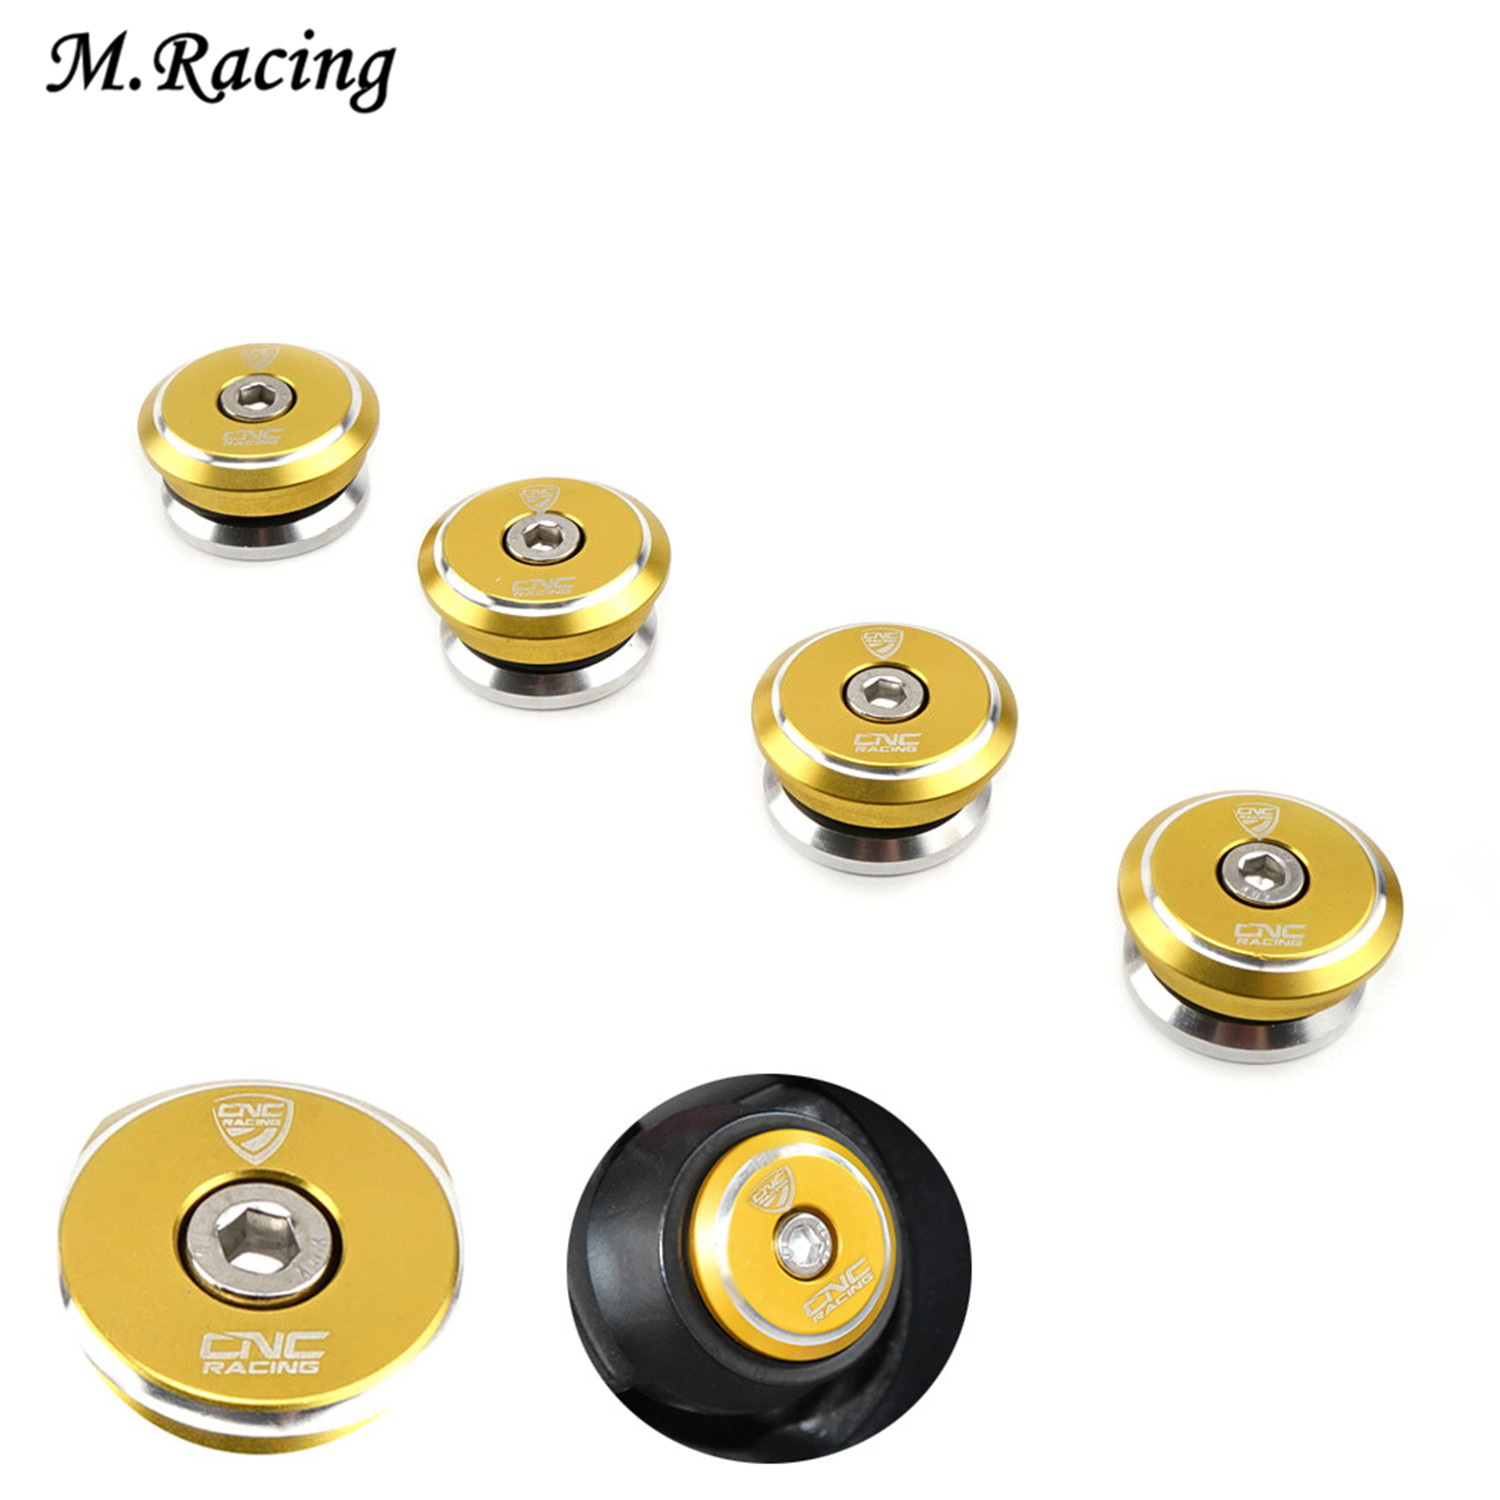 Motorcycle CNC Aluminum Frame Hole Cap Plug Bolt For Ducati 899/959/1199/1199S/1299/1299S Panigale